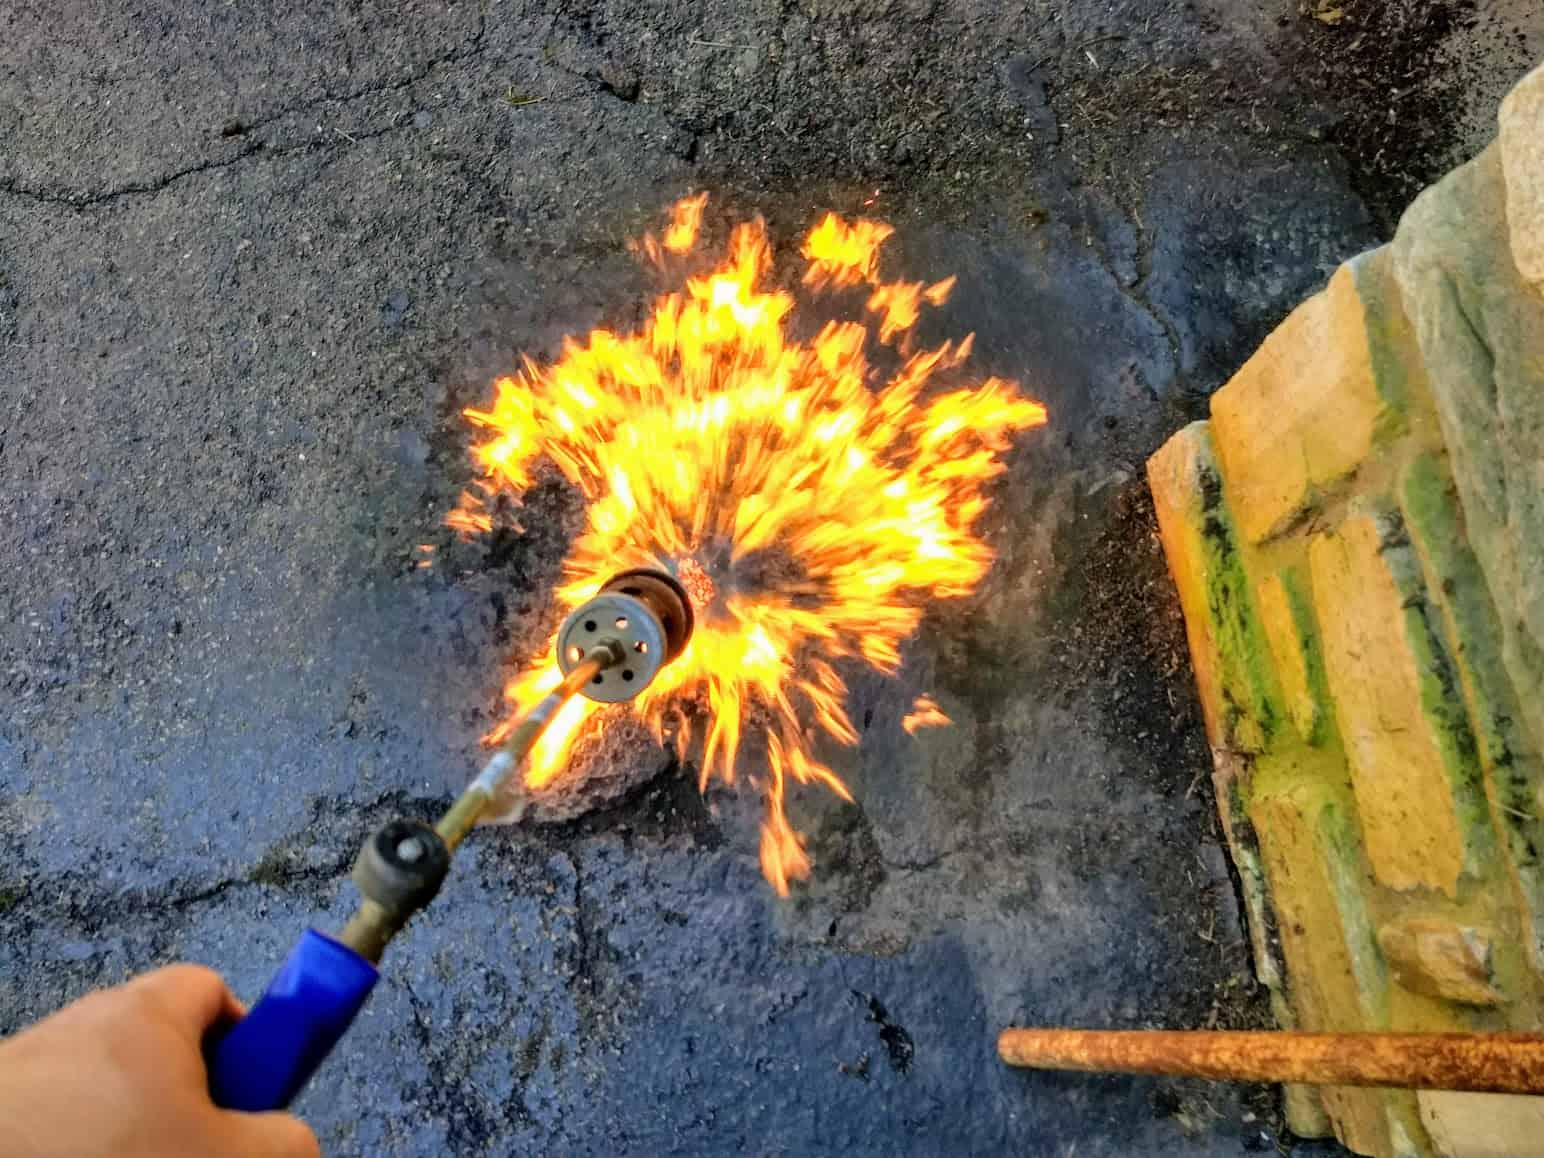 Torch to remove vegetation from an asphalt driveway prior to sealing